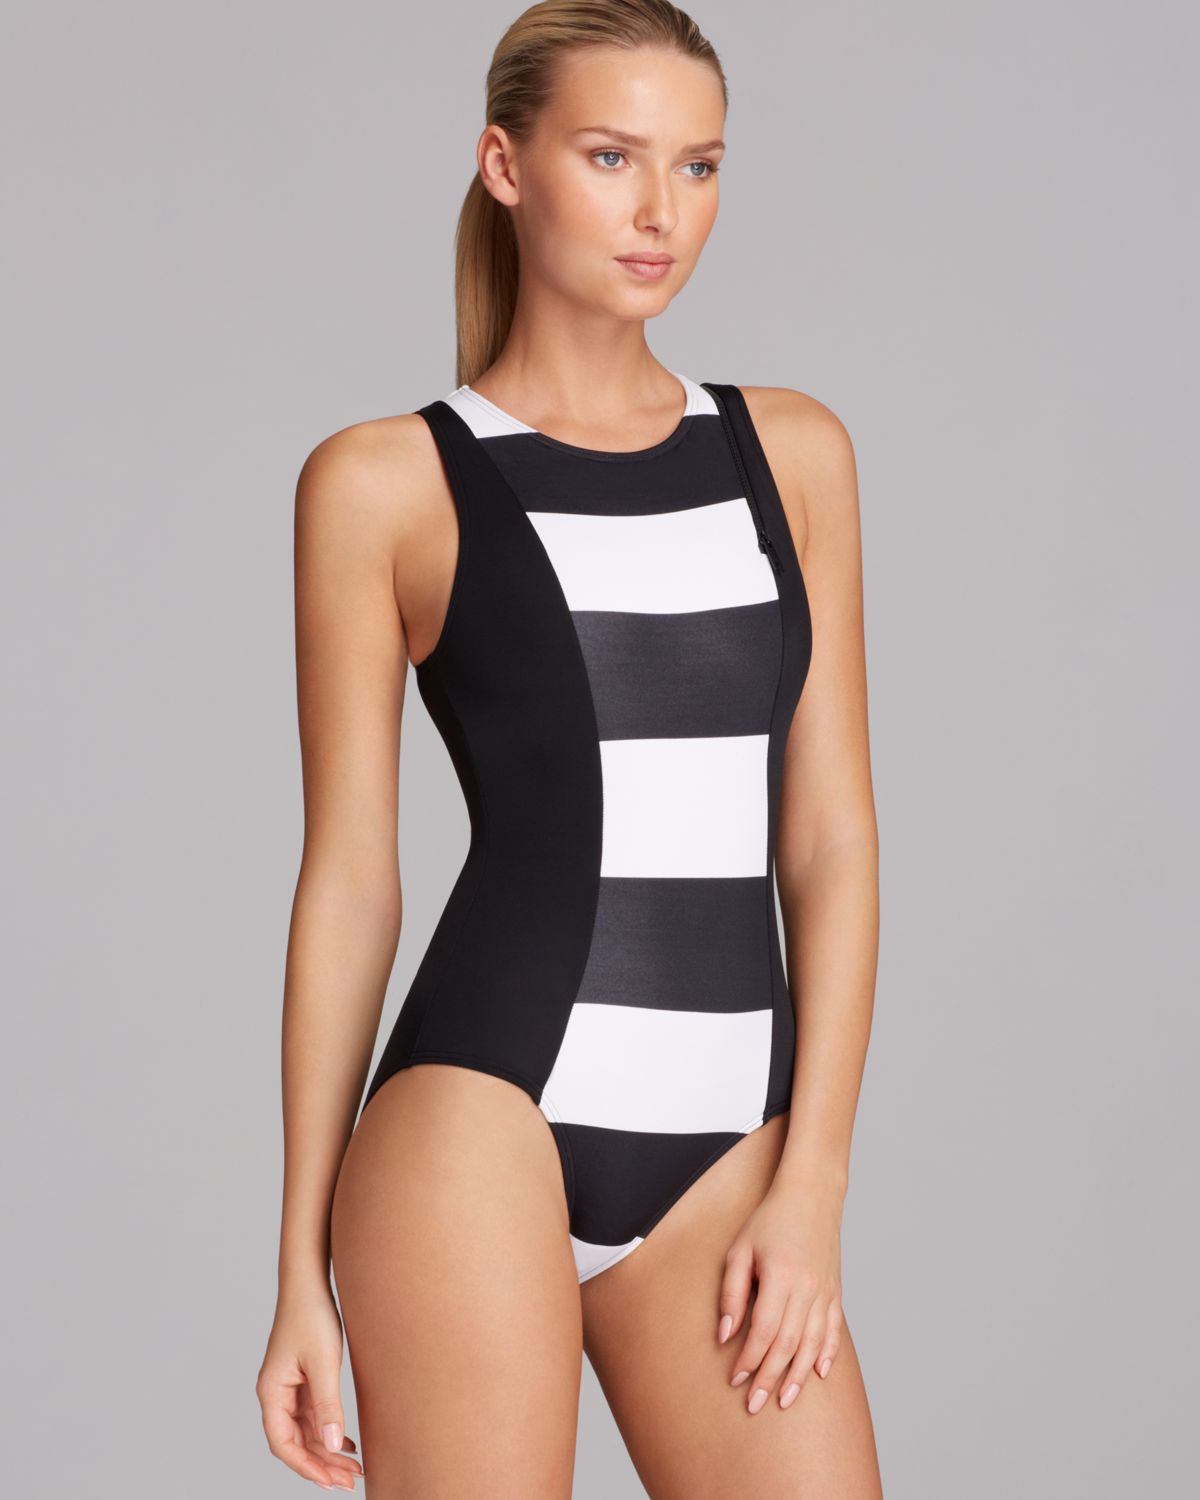 Lyst - DKNY Lorimer Stripe High Neck Maillot One Piece Swimsuit in White 53fde1e4b373